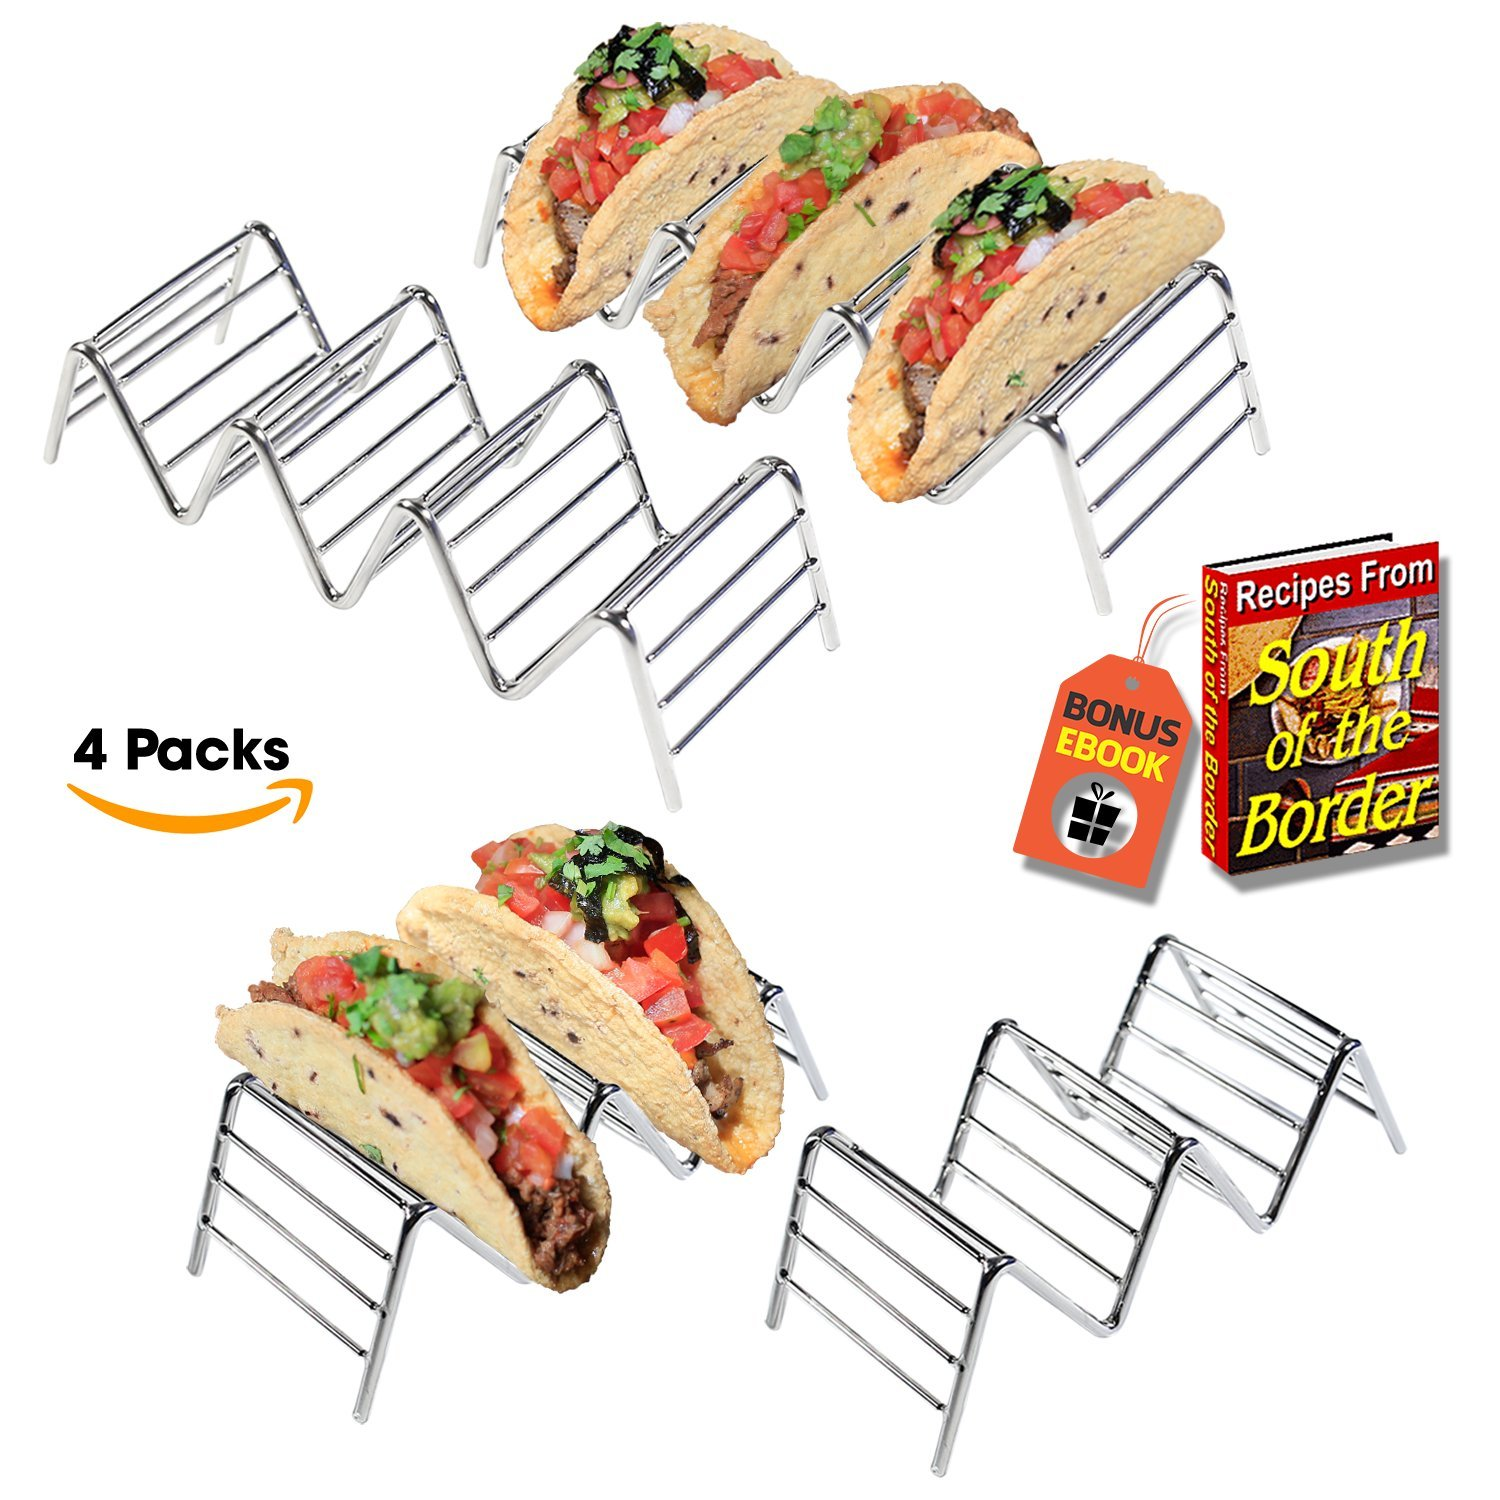 Premium Quality Stainless Steel Taco Holder Stand - Taco Rack - Taco Truck Tray Hold Up To 14 Soft or Hard Taco Shells - Dishwasher, Oven Safe For Baking or Reheating - Set of 4 Packs + BONUS eBook JOLUS